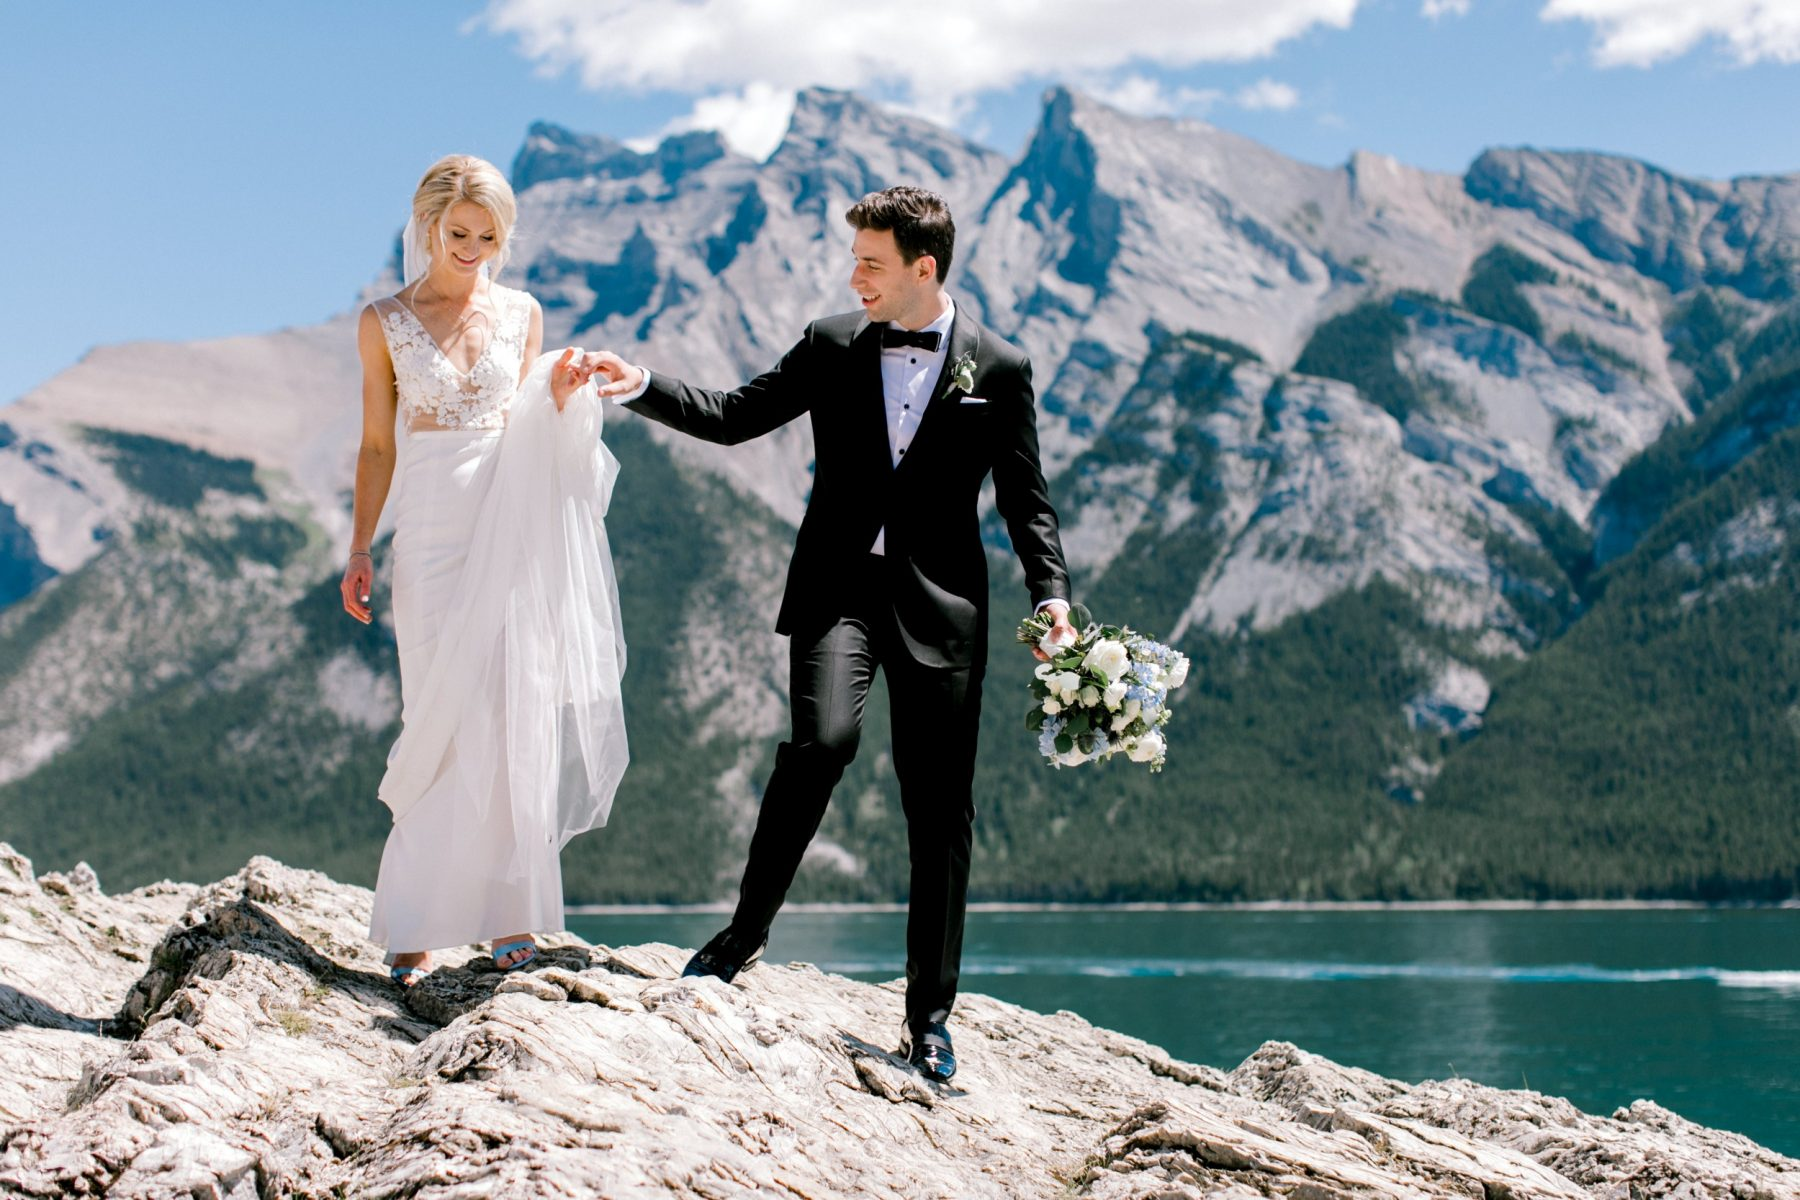 Edmonton Wedding Planners and Designers